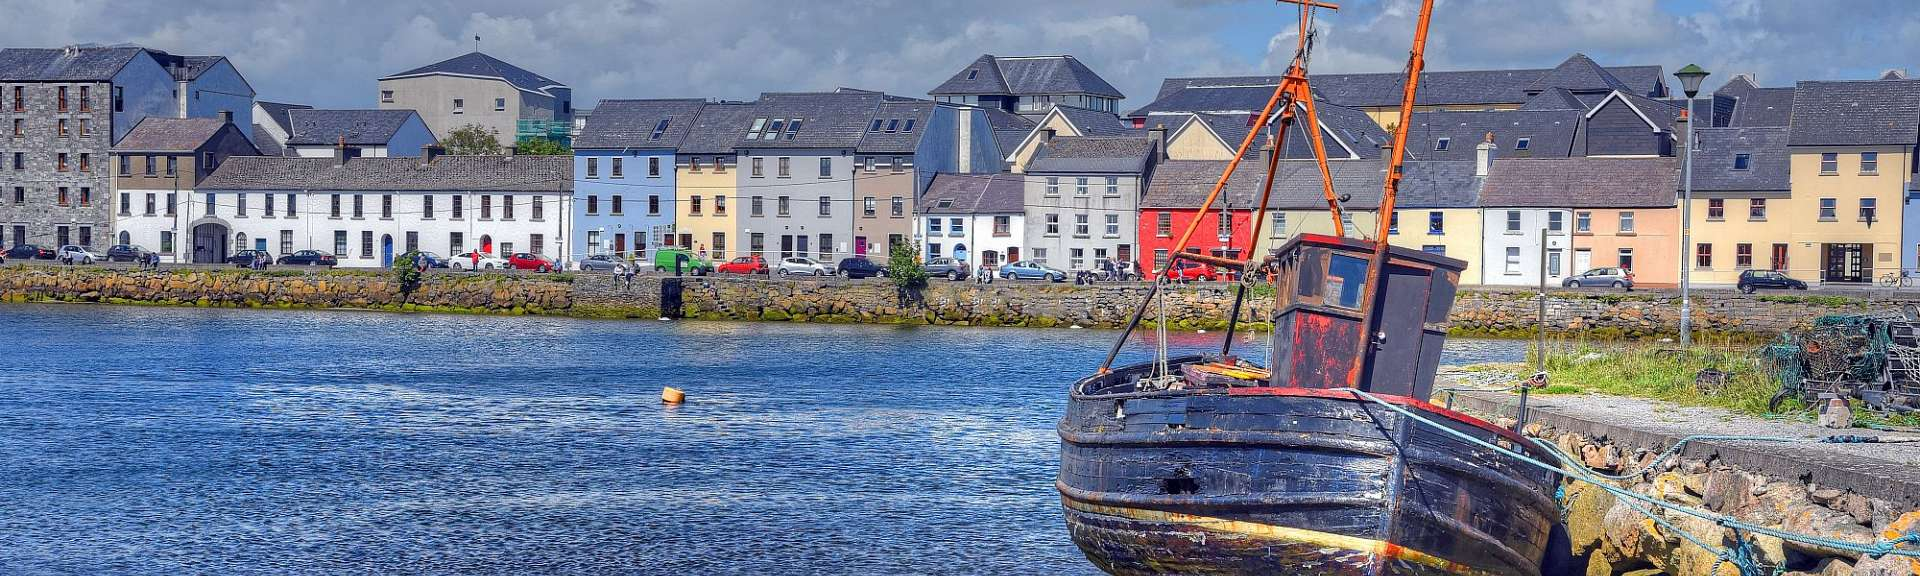 Claddagh Galway in Galway